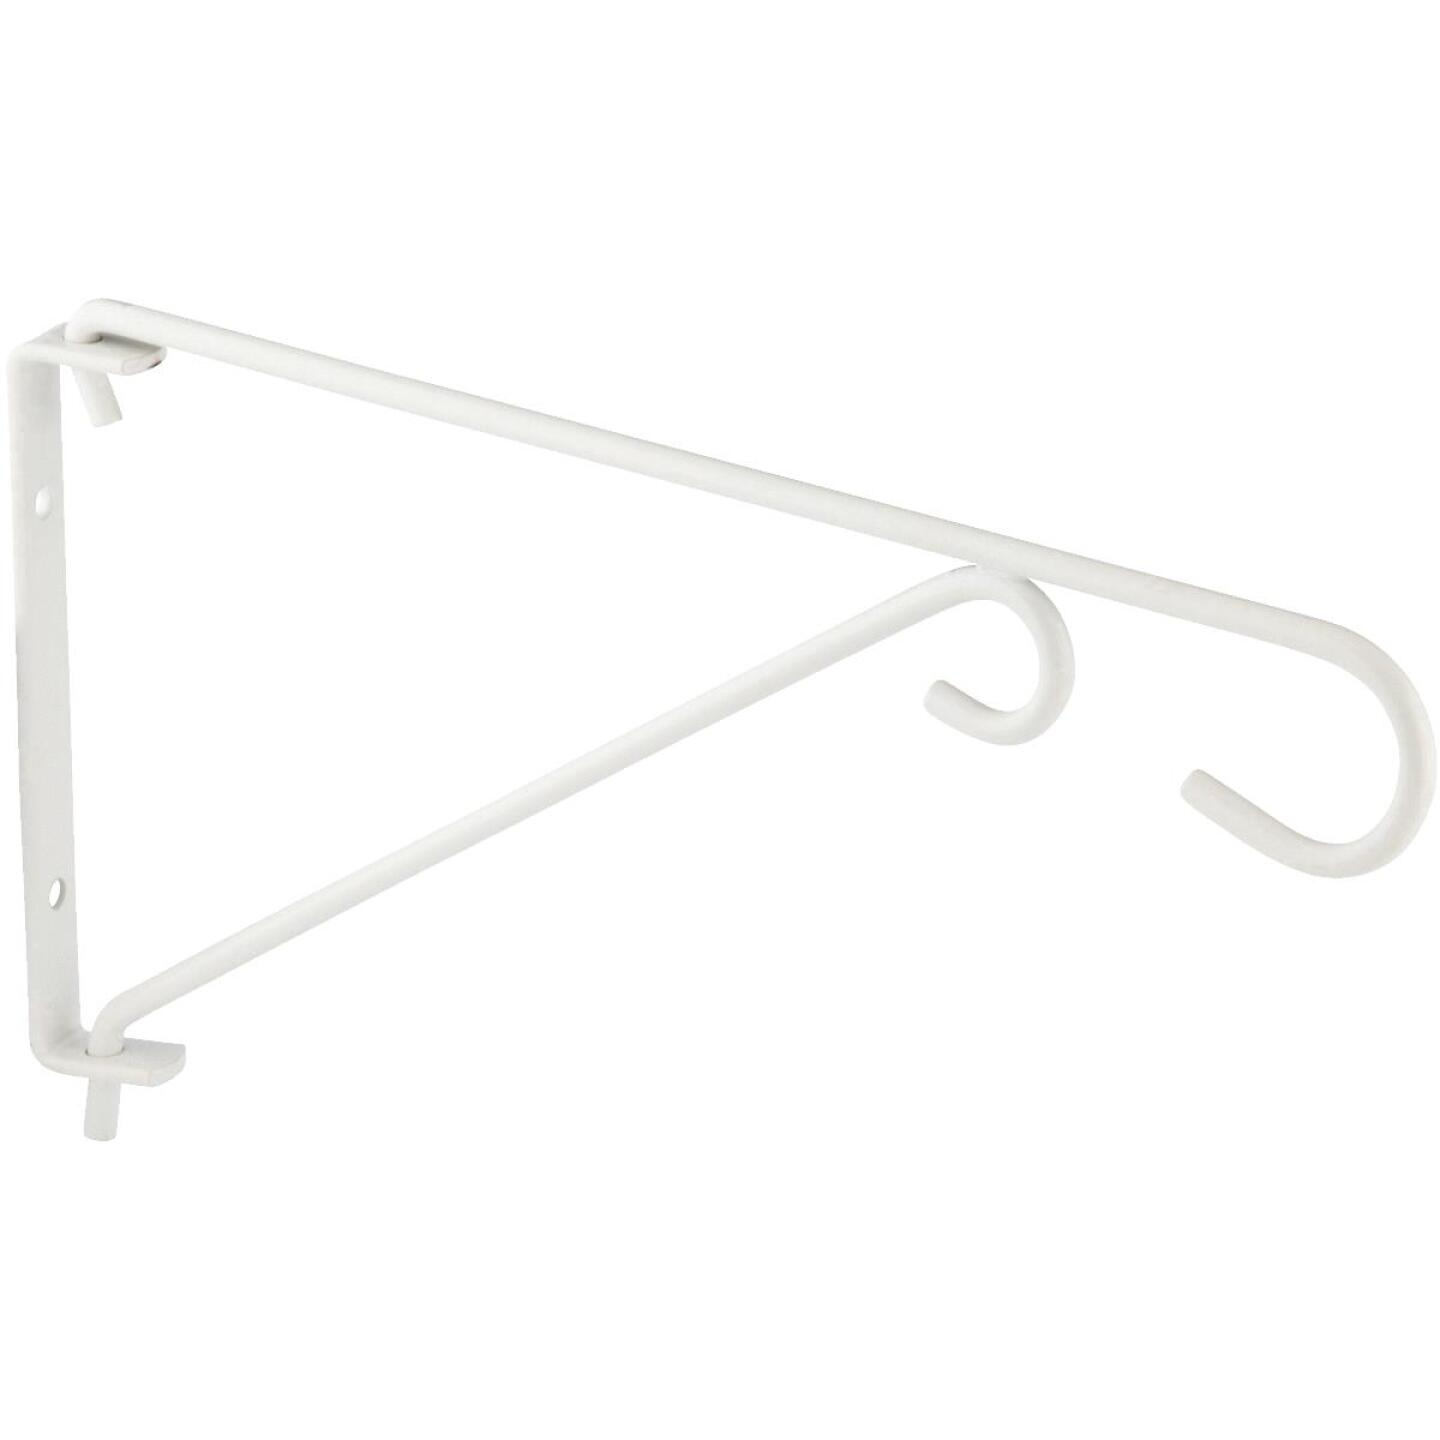 National 9 In. White Steel Swivel Hanging Plant Bracket Image 3